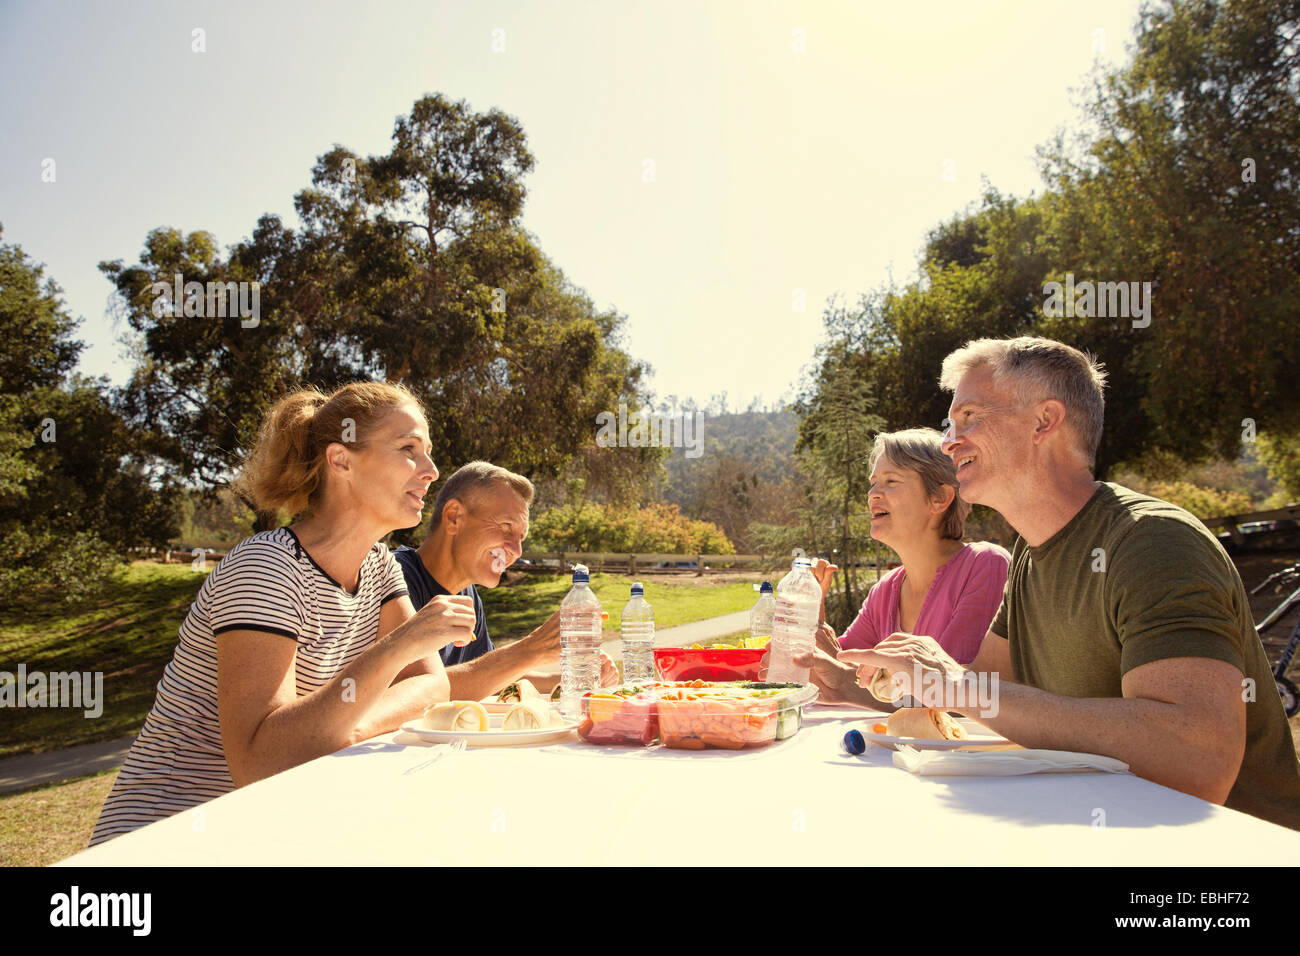 Four mature adult friends having a picnic lunch in park - Stock Image